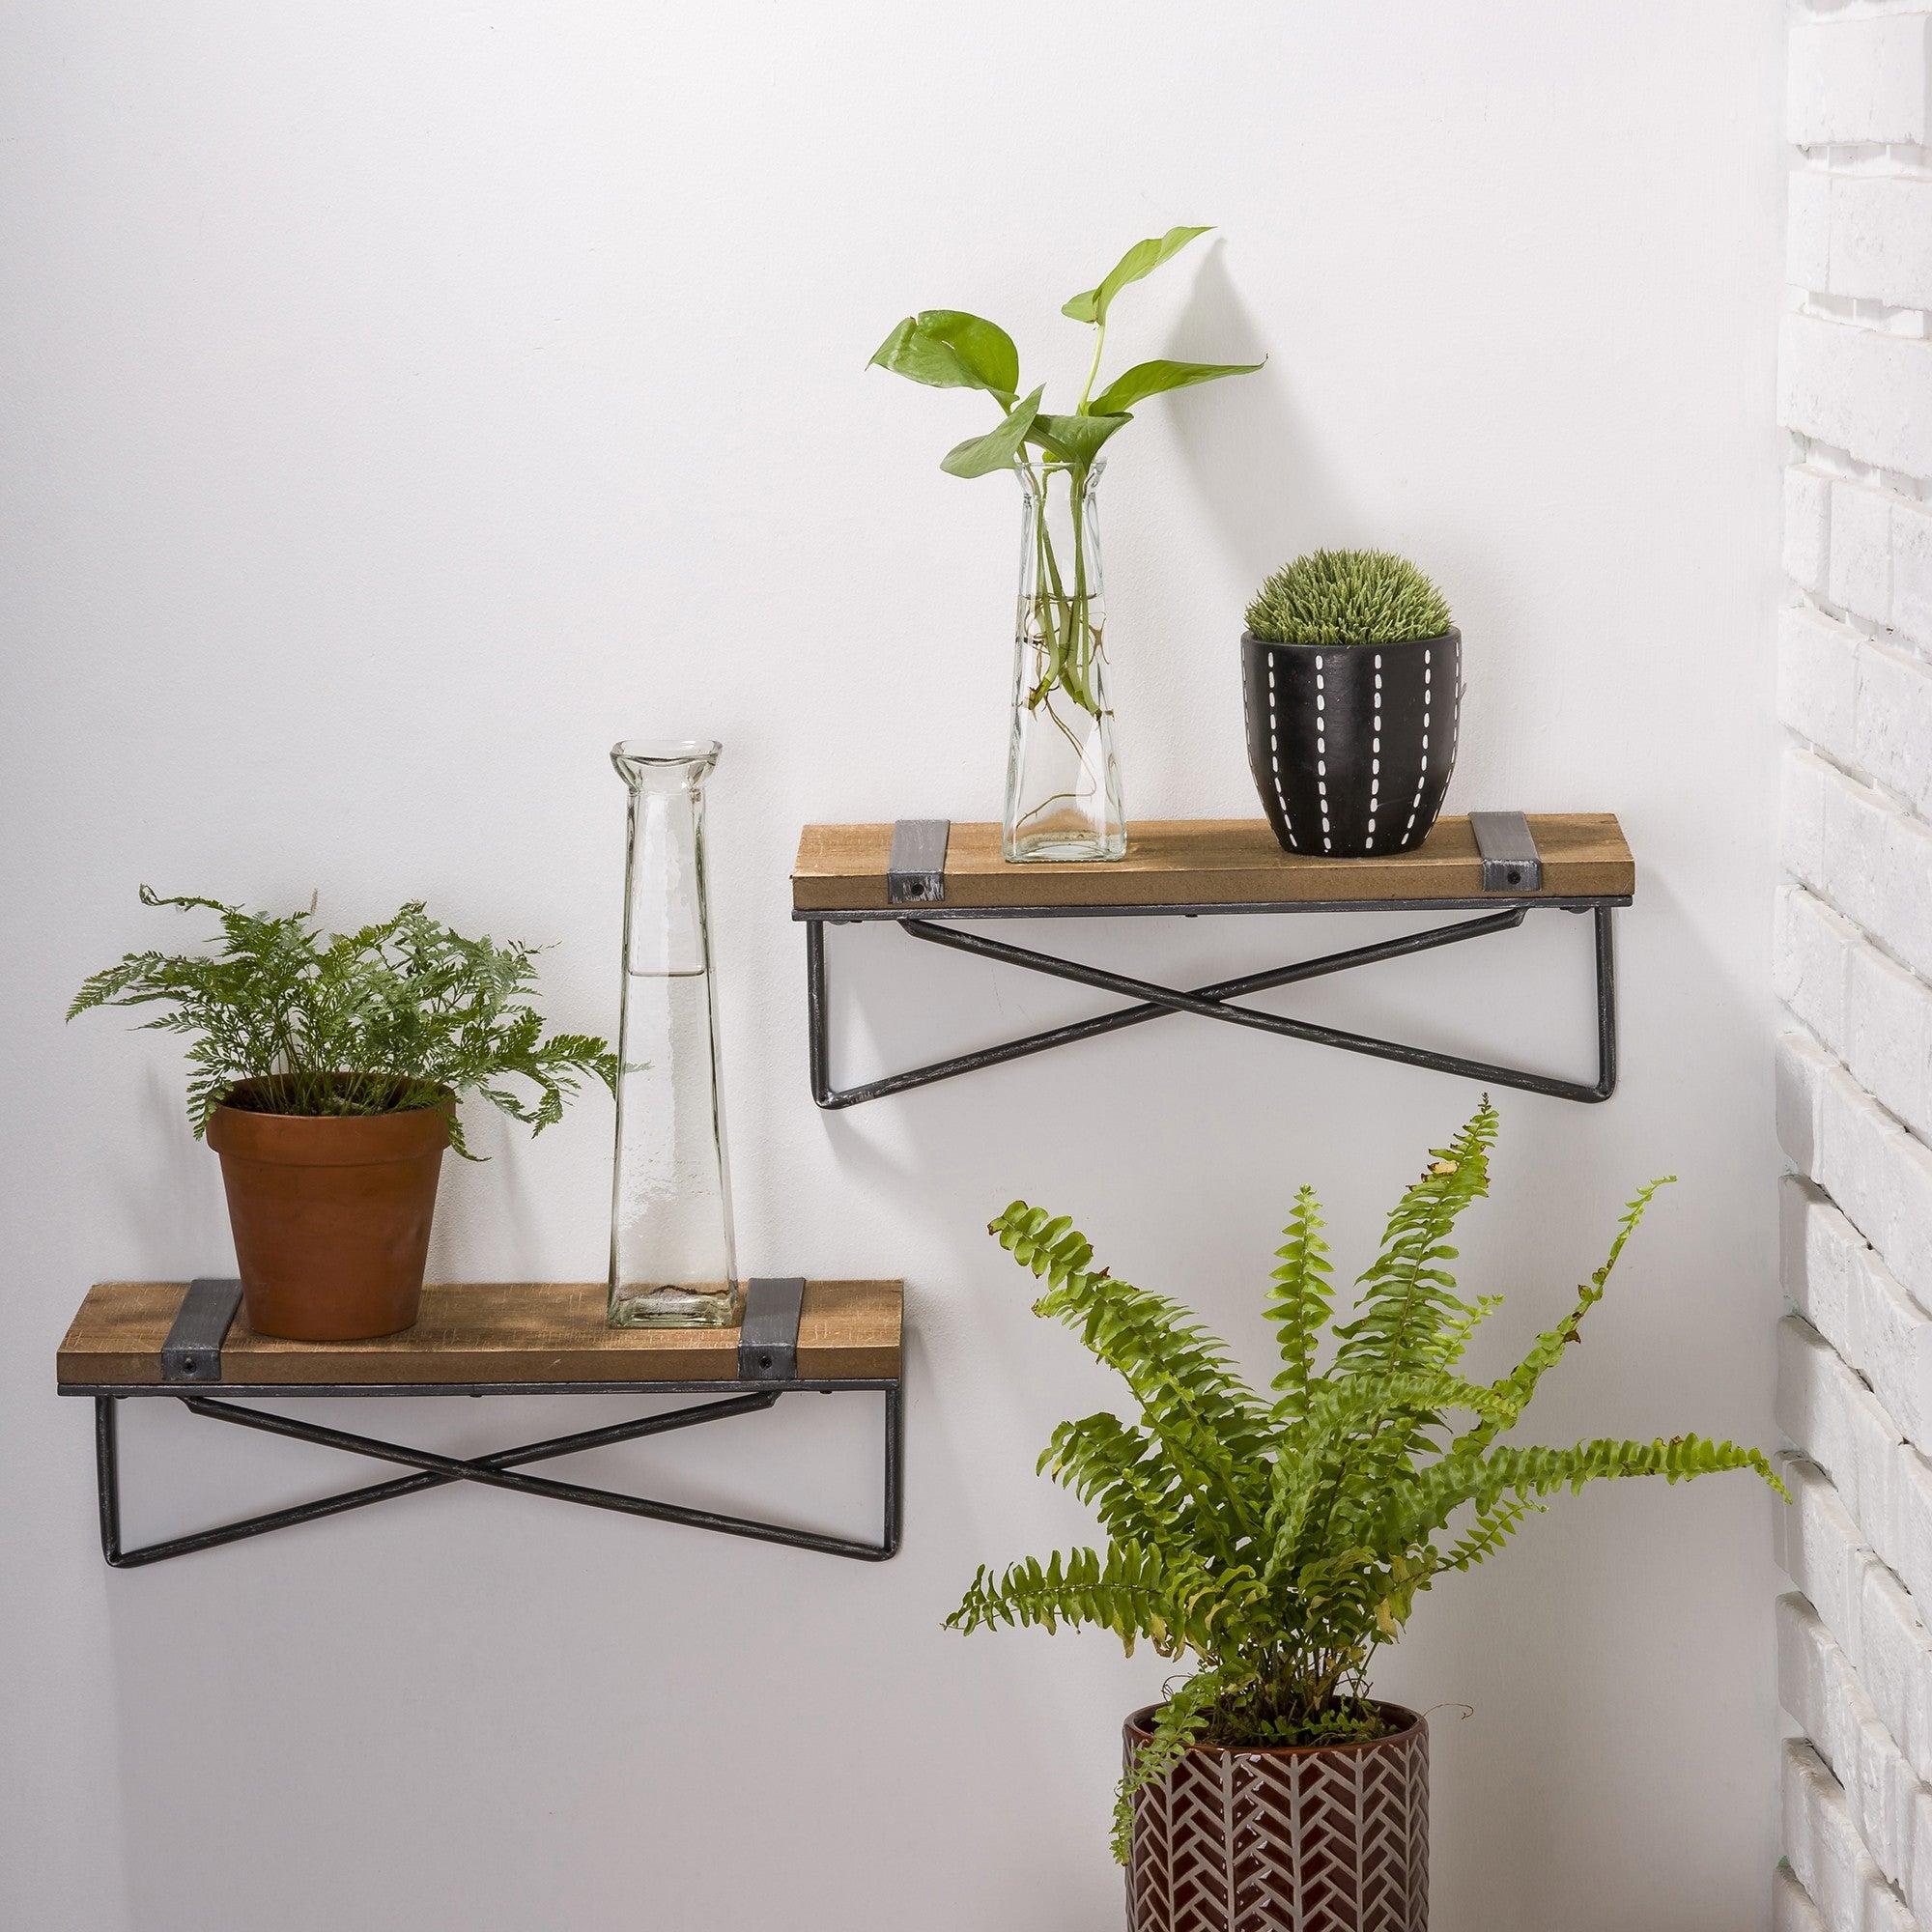 Be Fun and Functional With Floating Shelves